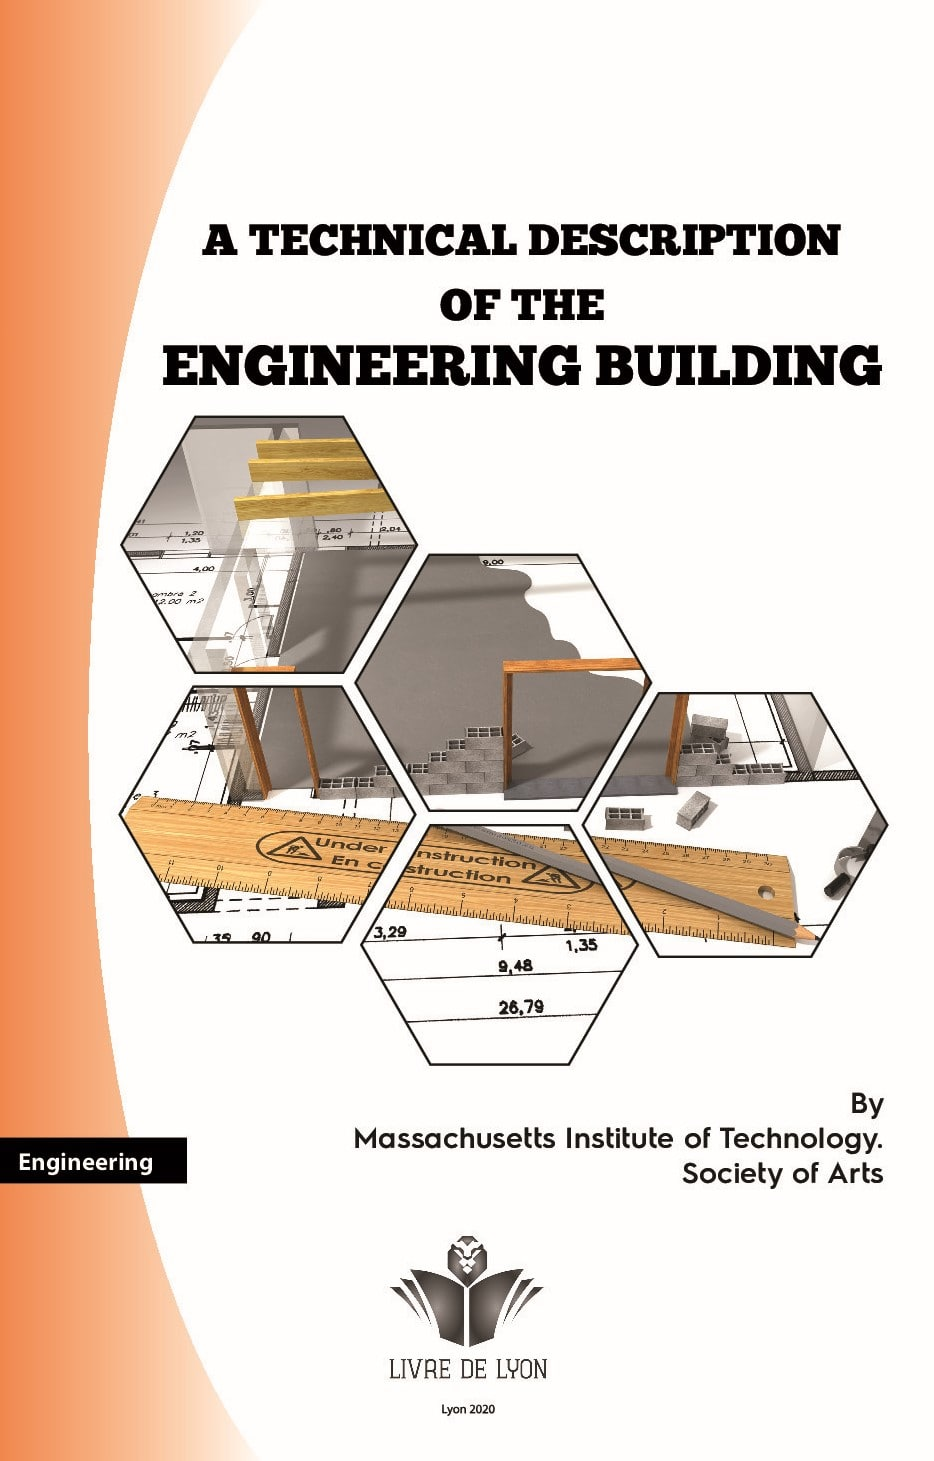 A Technical Description of the Engineering Building of the Institute of Technology